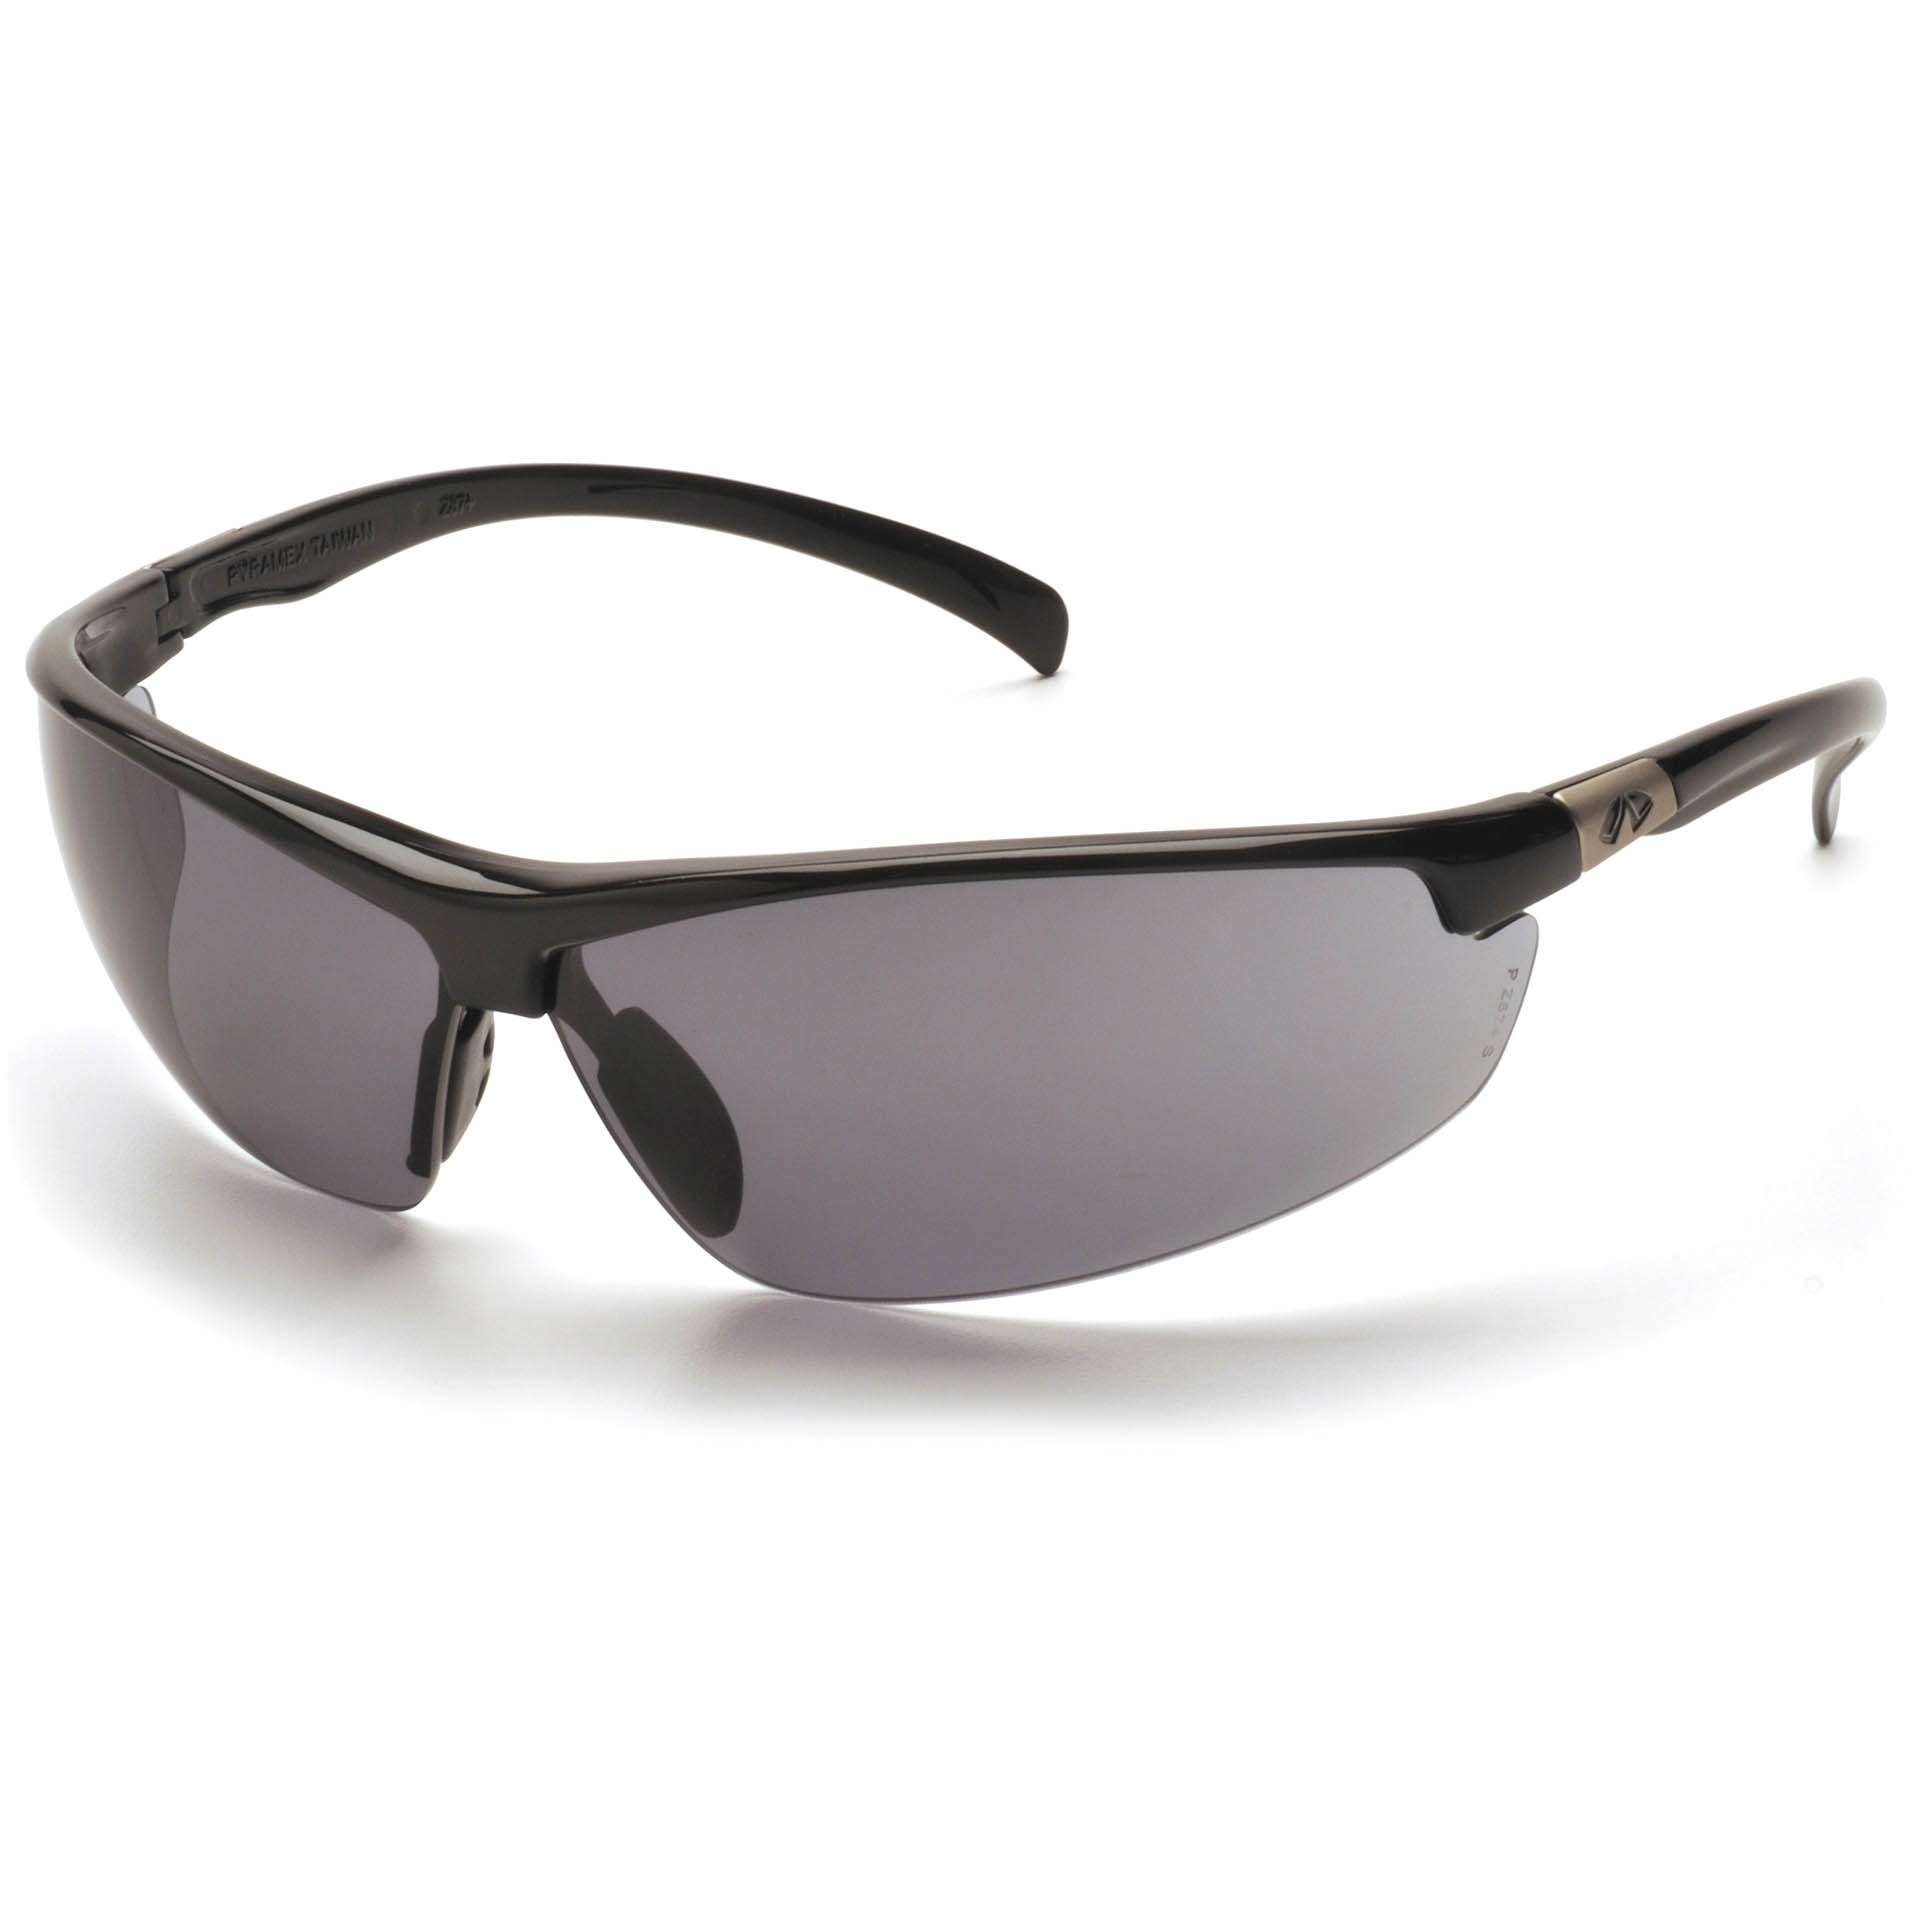 Safety Glasses Black Frame : Pyramex Forum Safety Glasses - Black Frame - Gray Lens ...